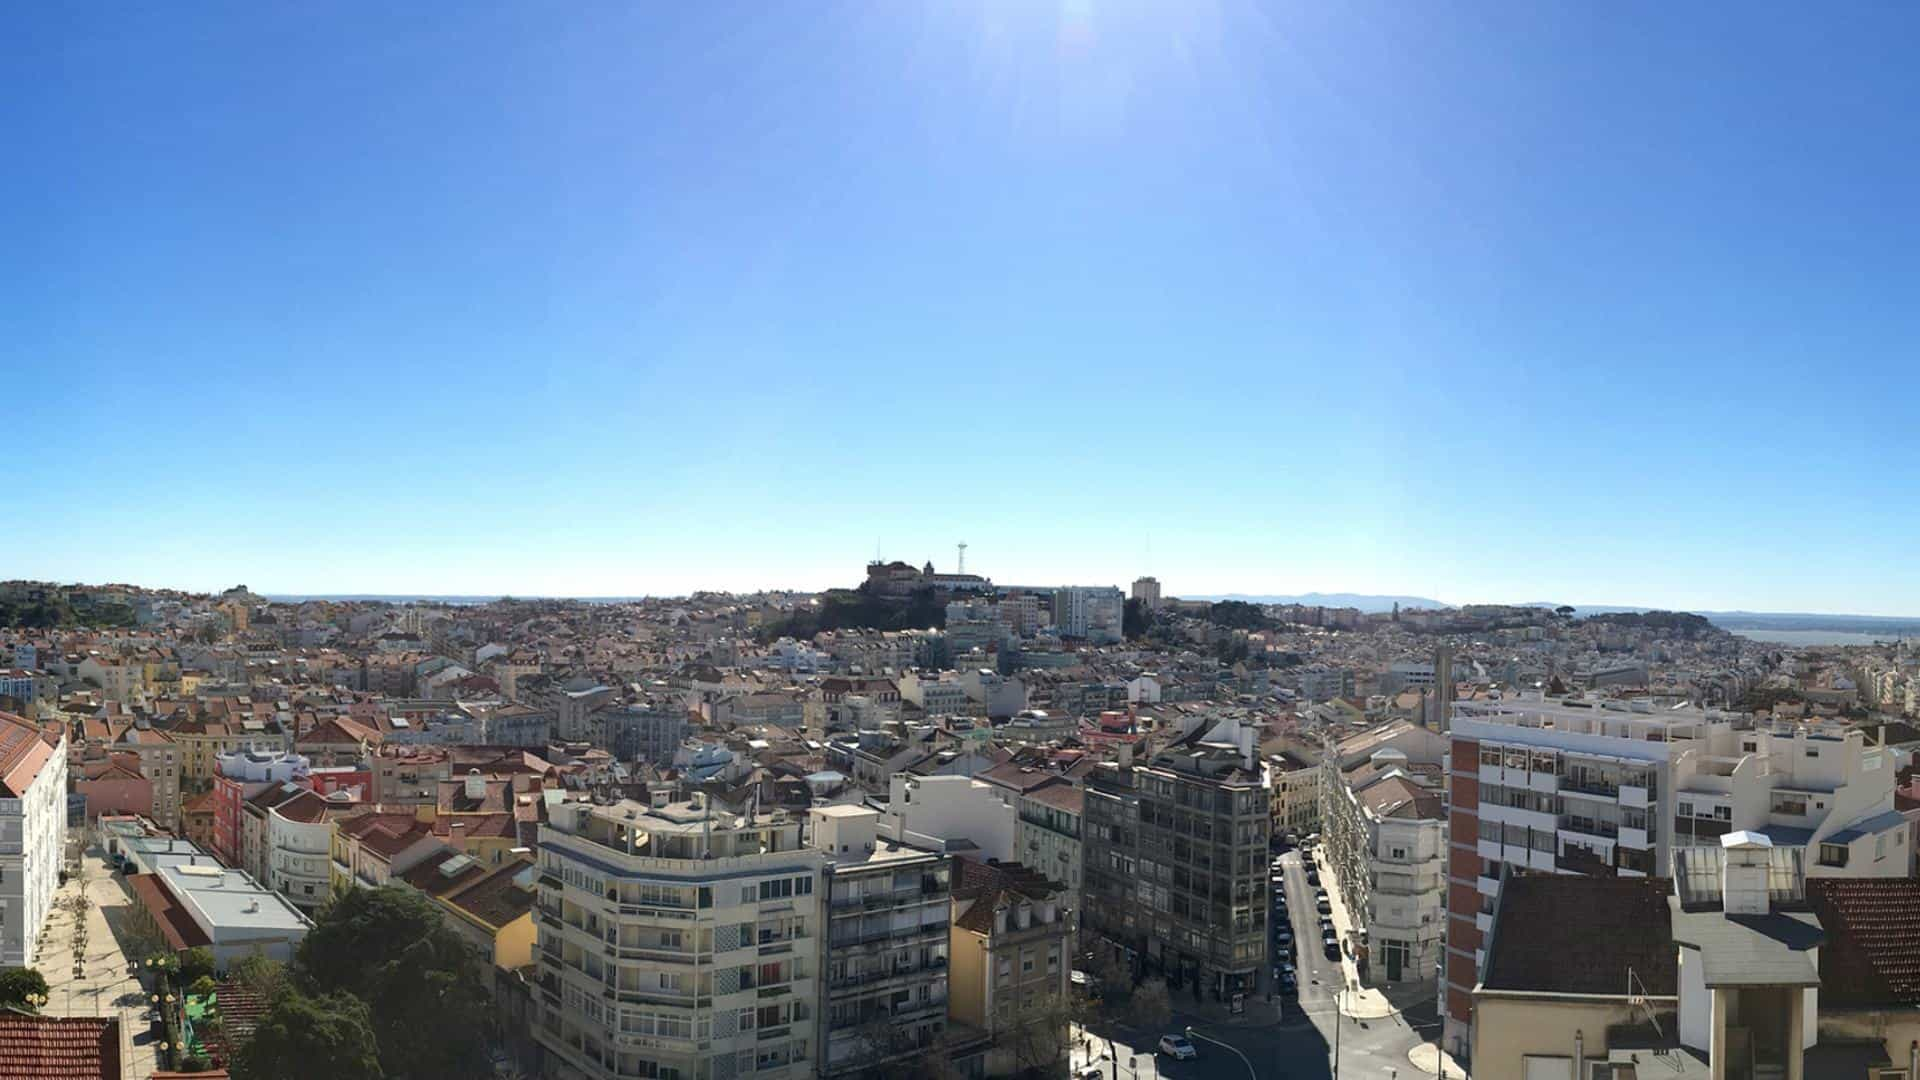 You get a wonderful view of Lisbon from the (top) 7th floor